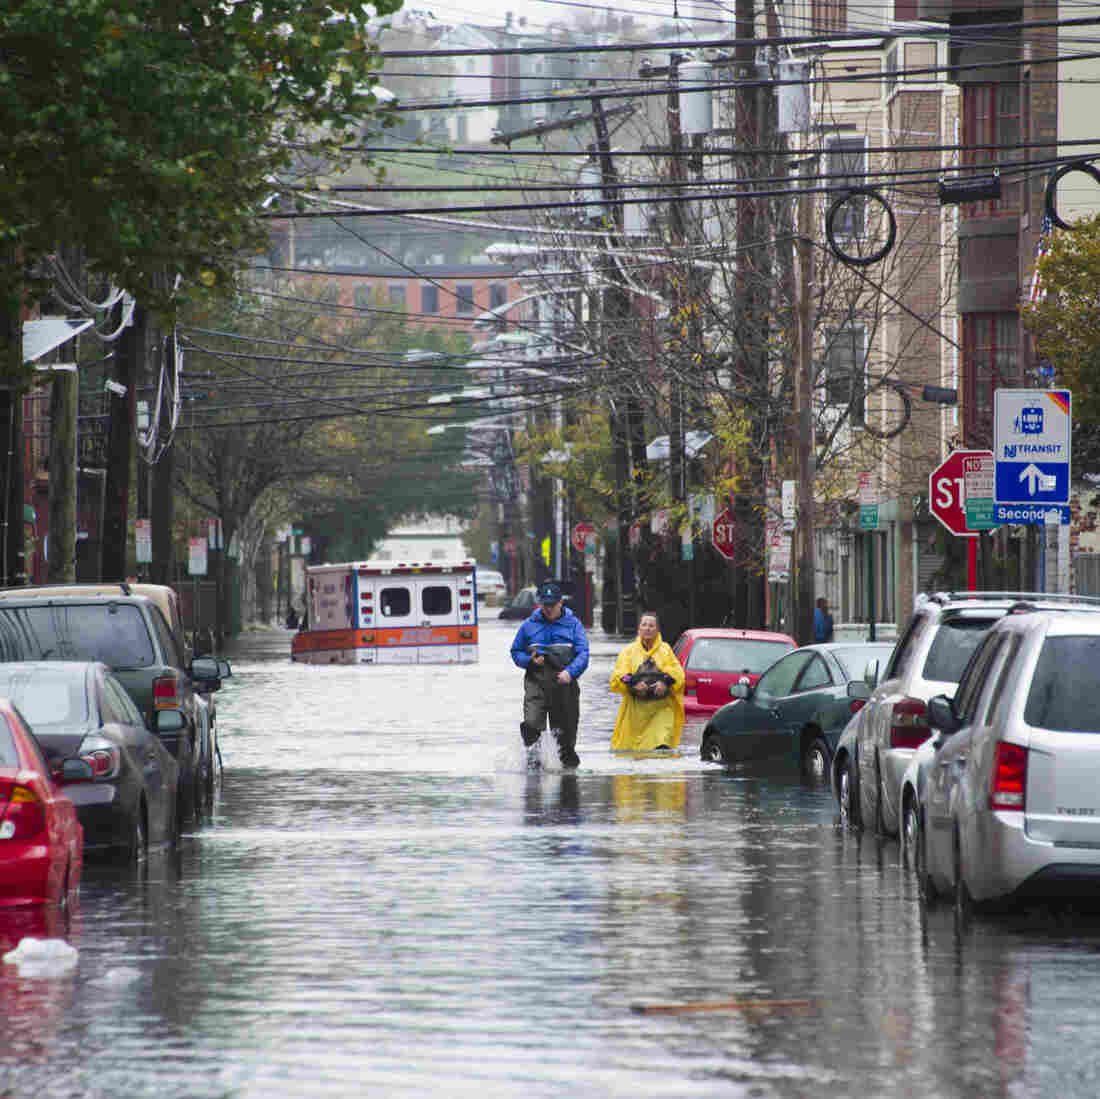 Hoboken, N.J., residents walk through flood water in the aftermath of Hurricane Sandy. Mayor Dawn Zimmer is advocating for better planning and increased funding for flood-prone urban areas.